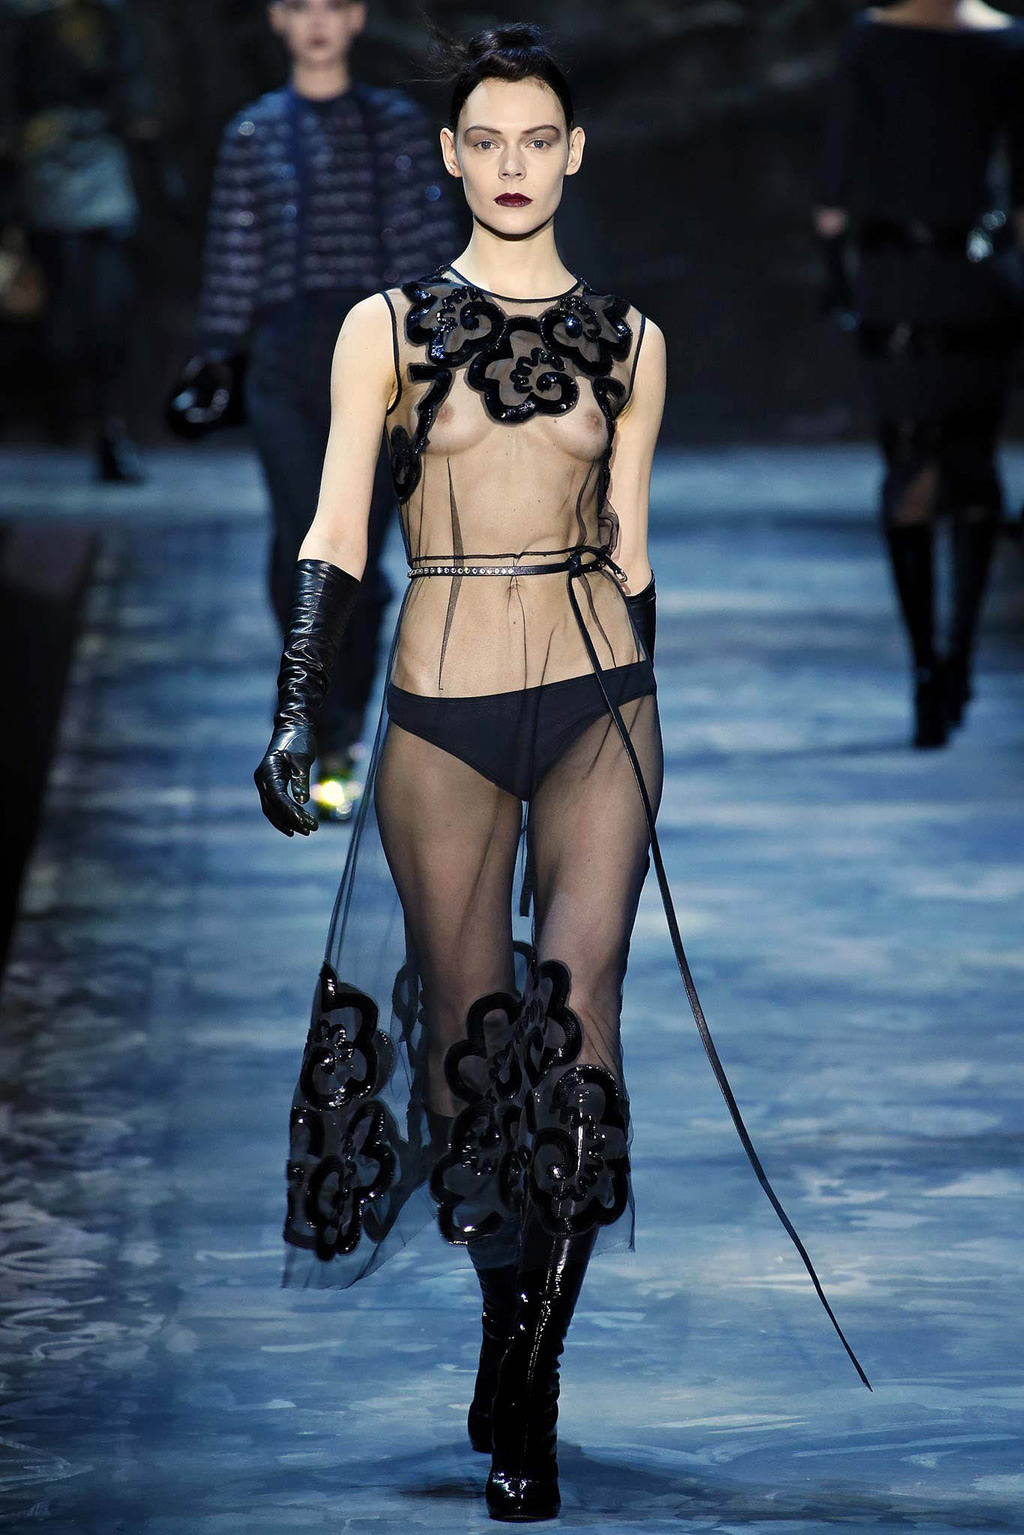 Samye-seksualnye-naryady-New-York-Fashion-Week-osen-zima-2015-2016-13-foto